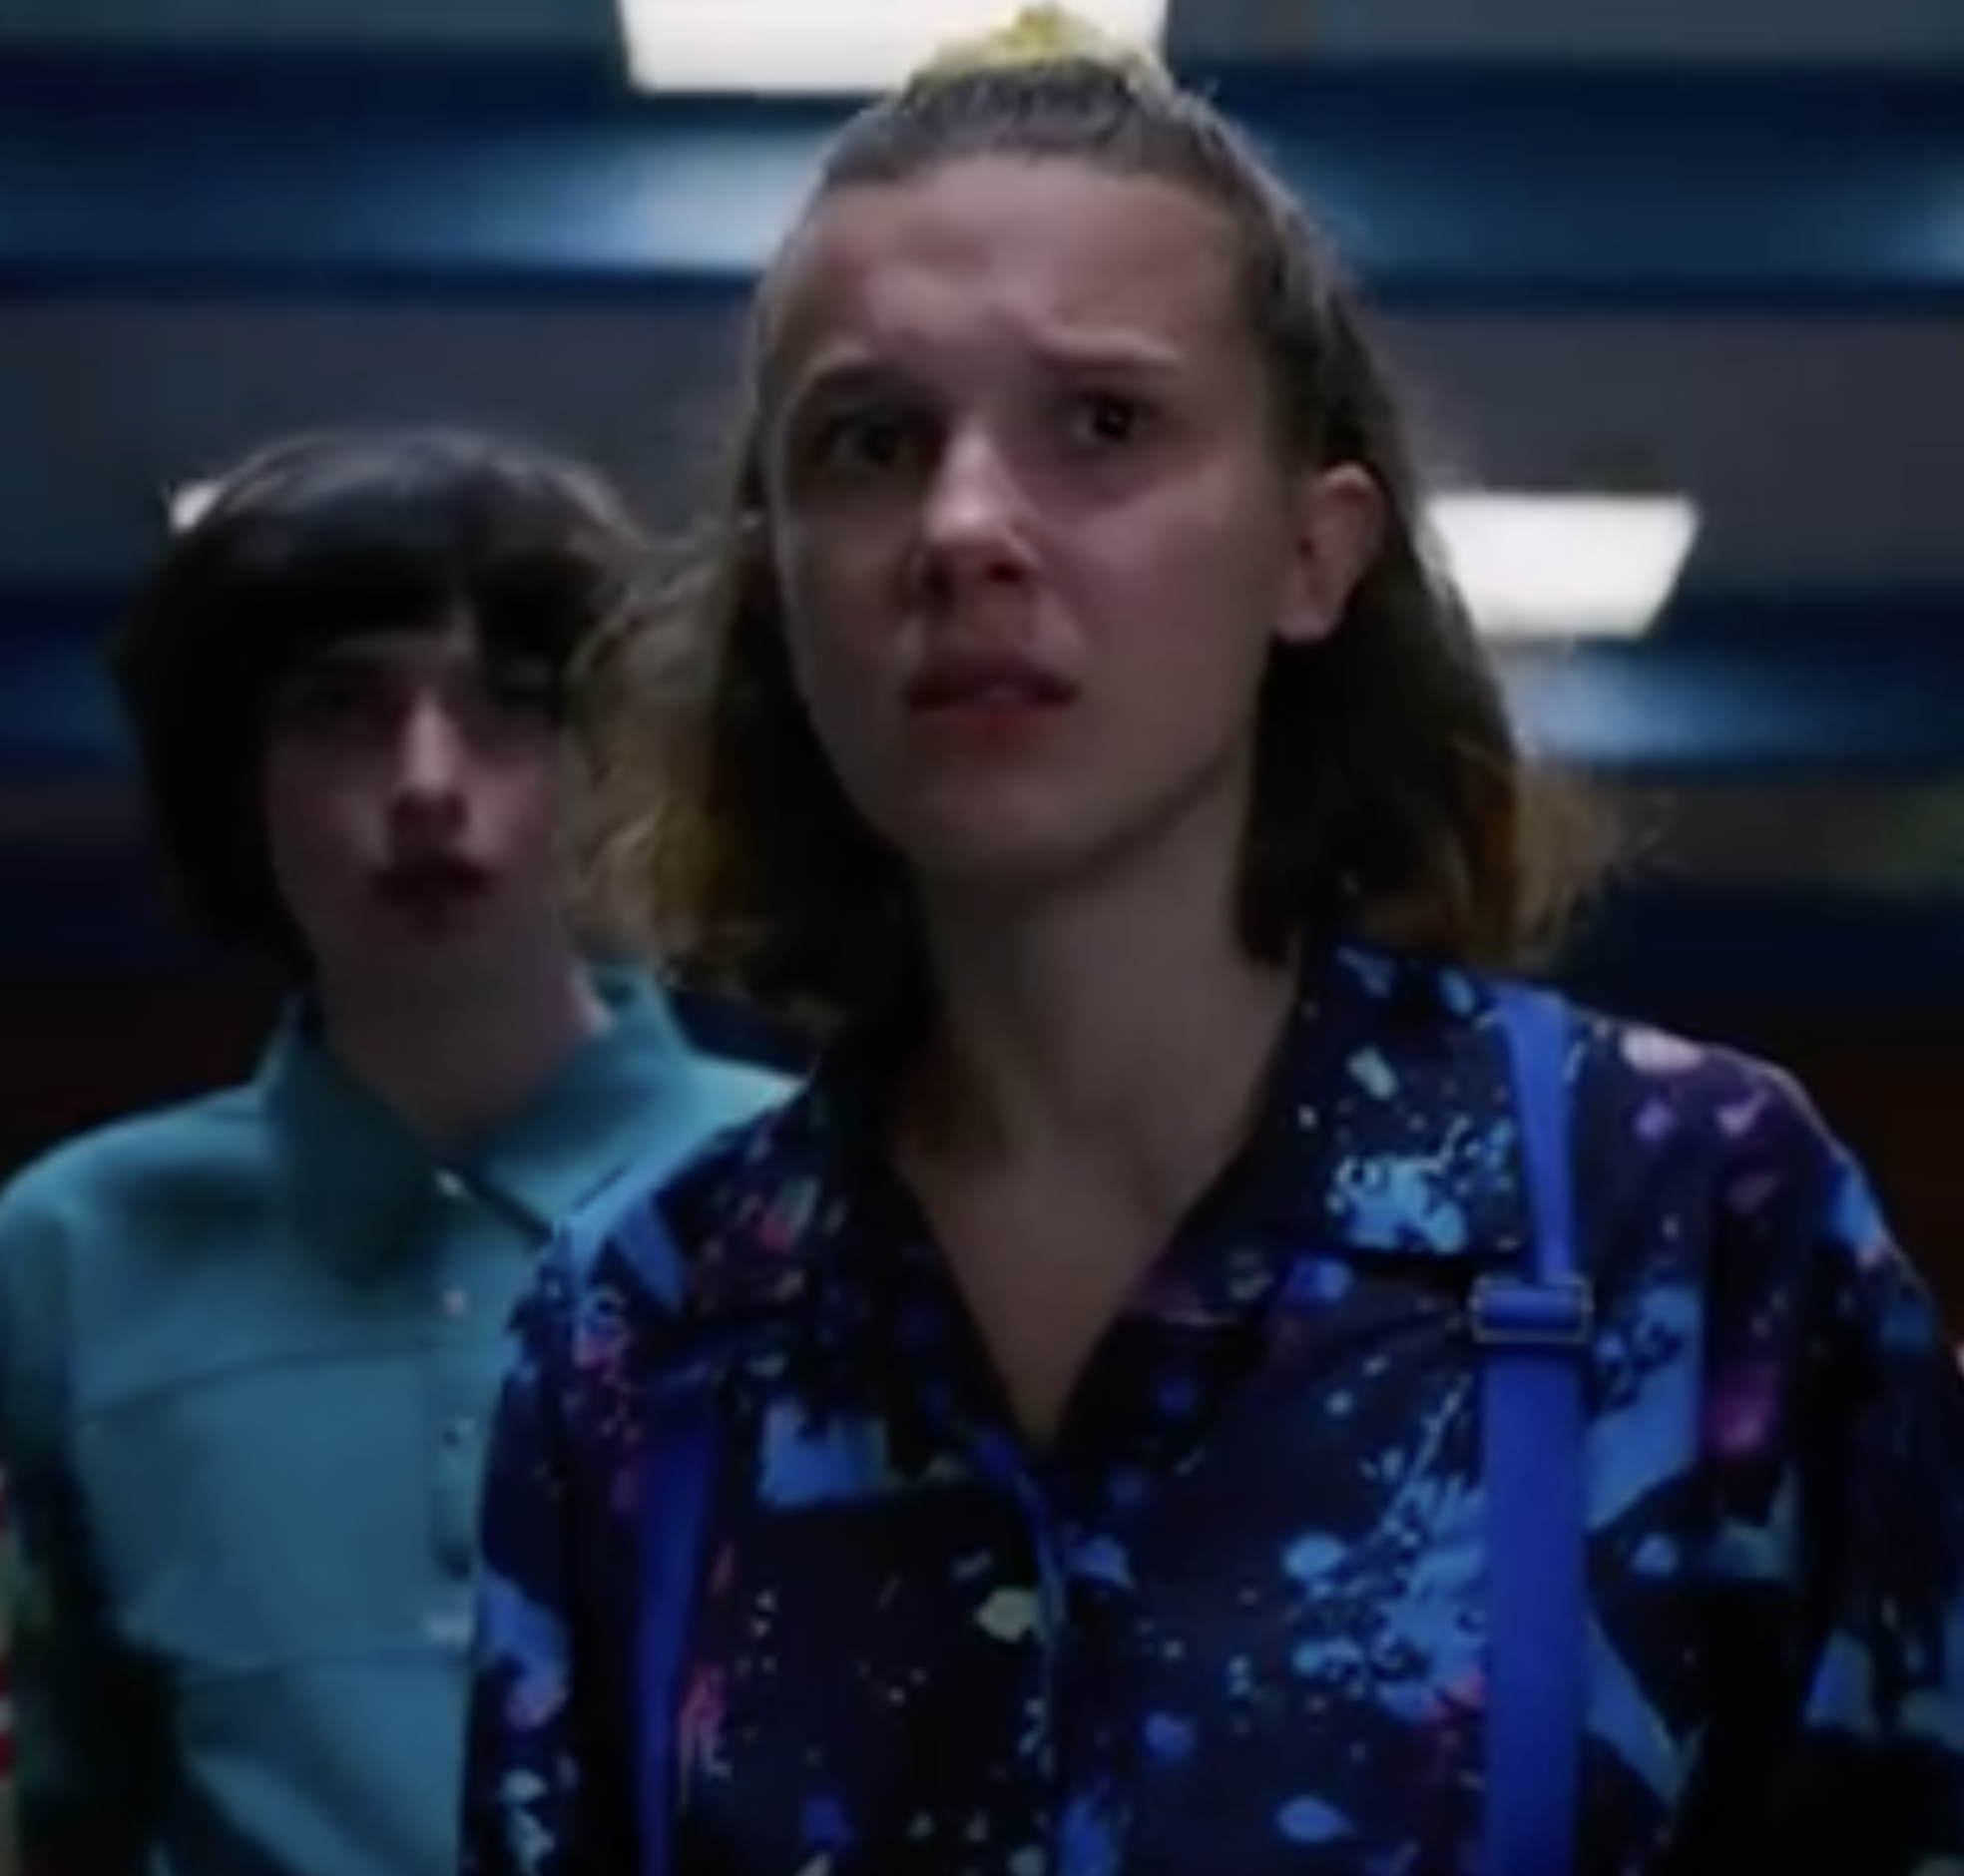 Eleven faces Stranger Things 3